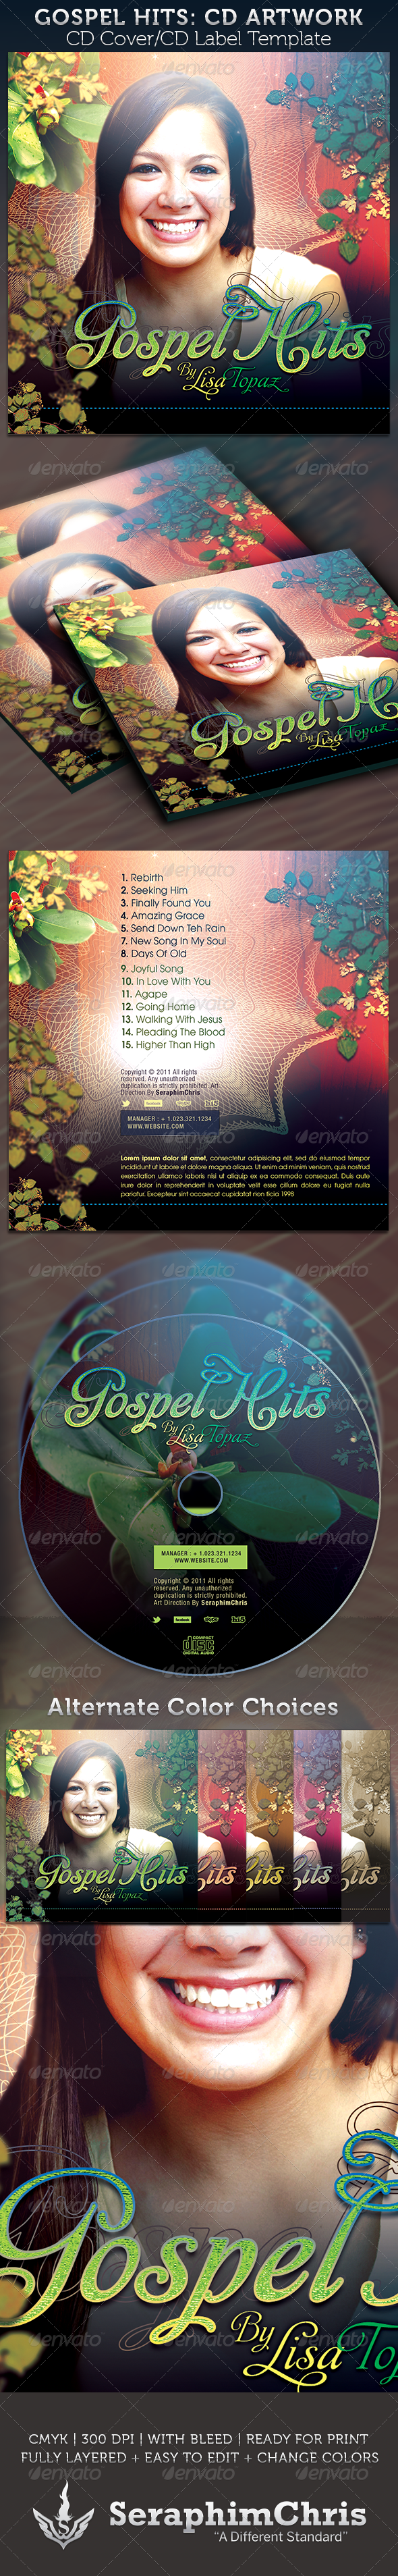 Gospel Hits CD Cover Artwork Template - CD &amp; DVD artwork Print Templates